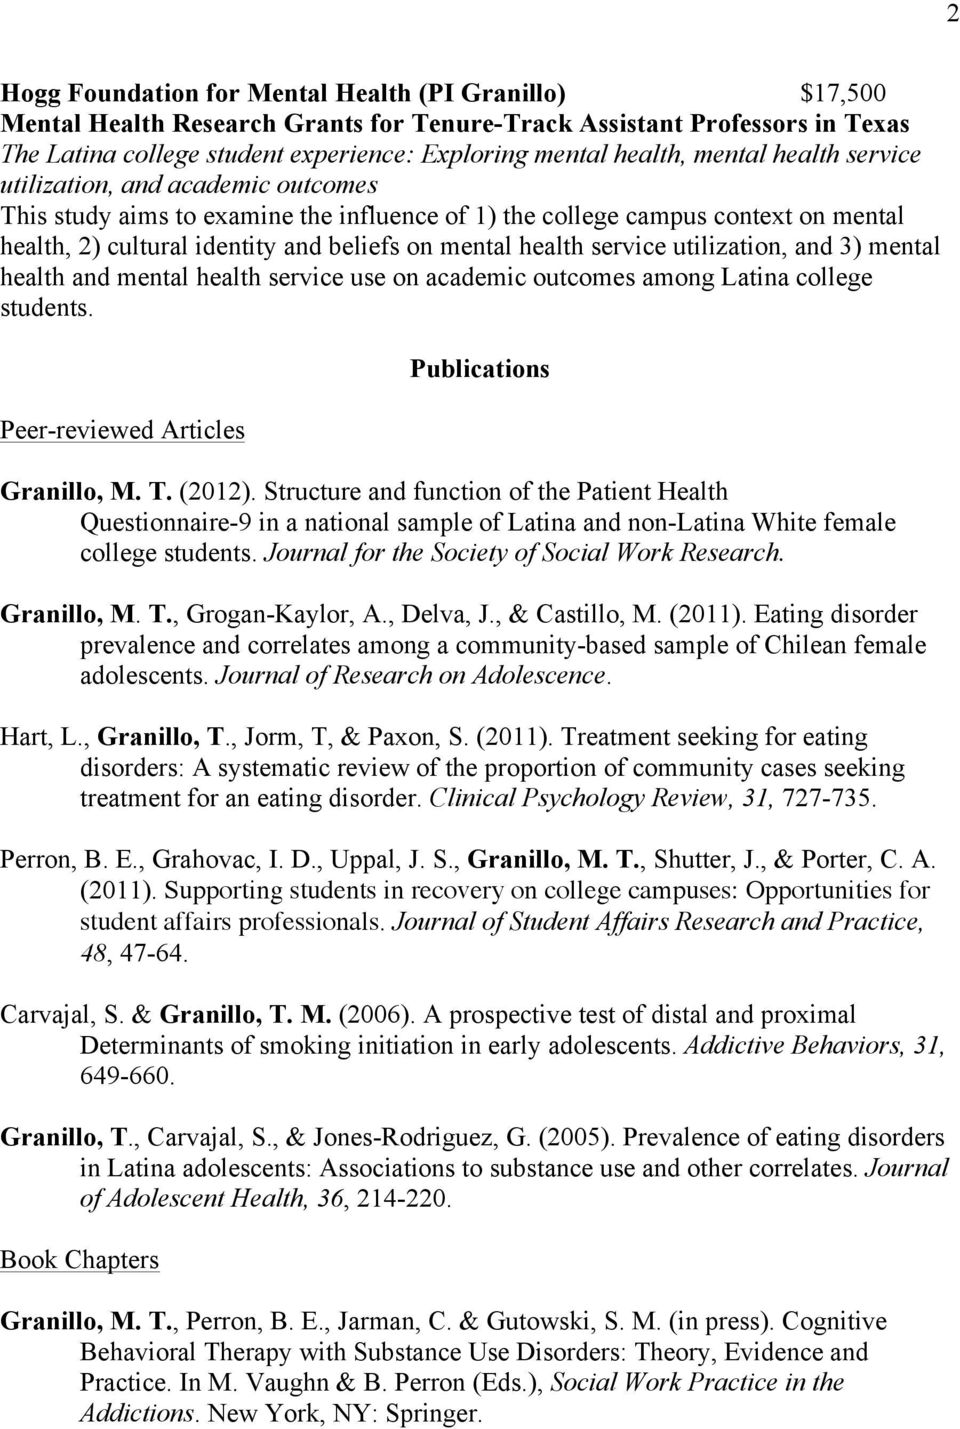 service utilization, and 3) mental health and mental health service use on academic outcomes among Latina college students. Peer-reviewed Articles Publications Granillo, M. T. (2012).